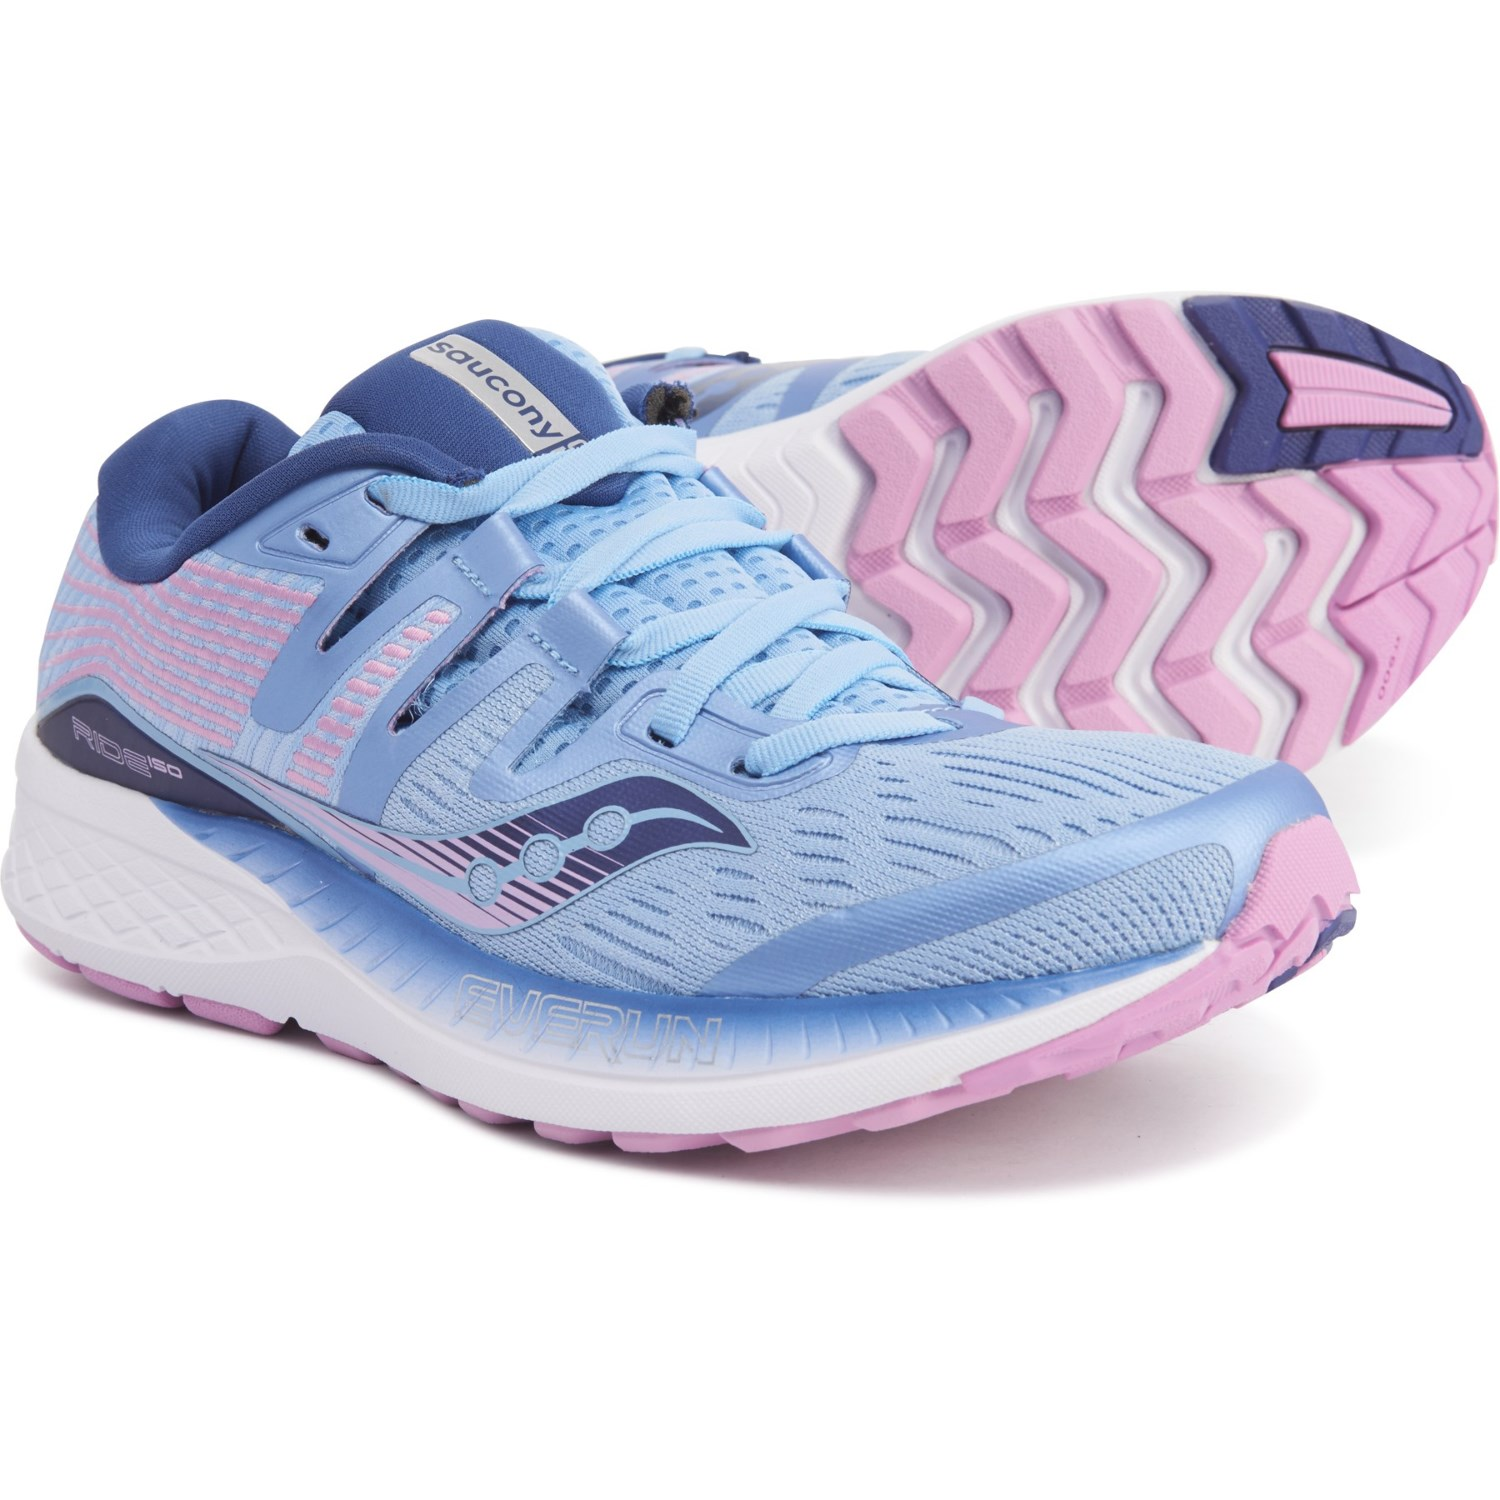 30cec23ae2 Saucony Ride ISO Running Shoes (For Women)